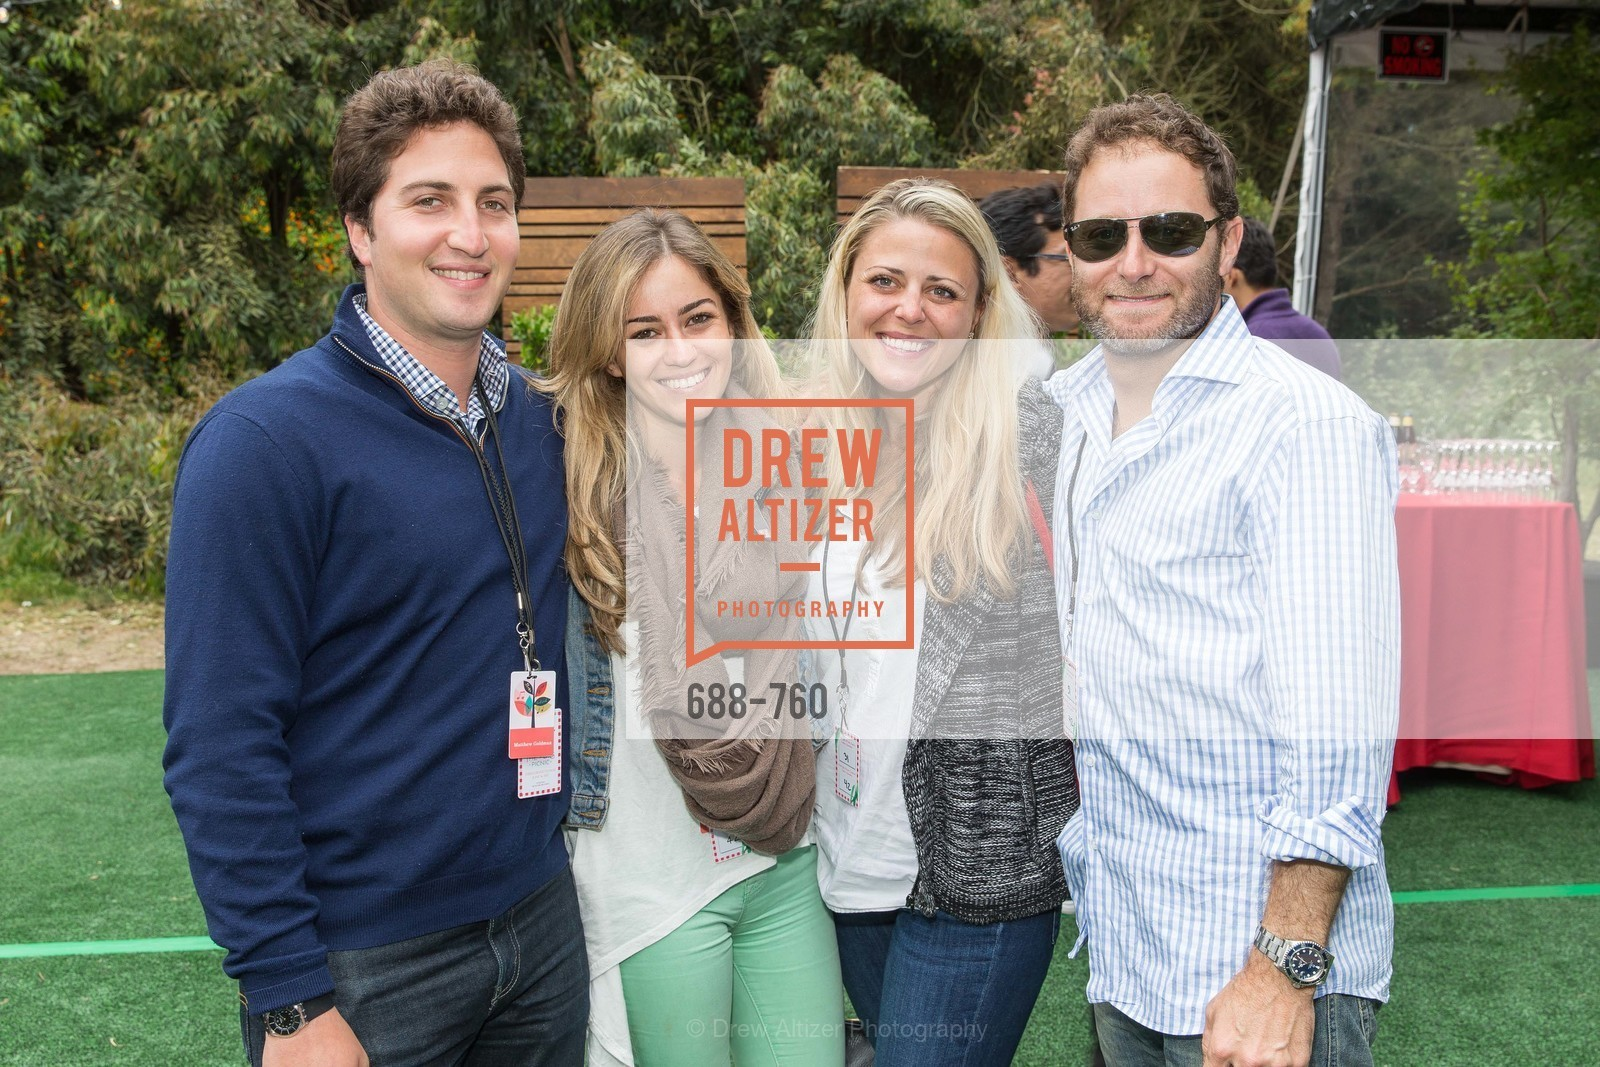 Matthew Goldman, Keren Jakubovits, Heather Pastorius, Scott Jacob, The Big Picnic! A Benefit & Concert for STERN GROVE FESTIVAL, US, June 14th, 2015,Drew Altizer, Drew Altizer Photography, full-service agency, private events, San Francisco photographer, photographer california